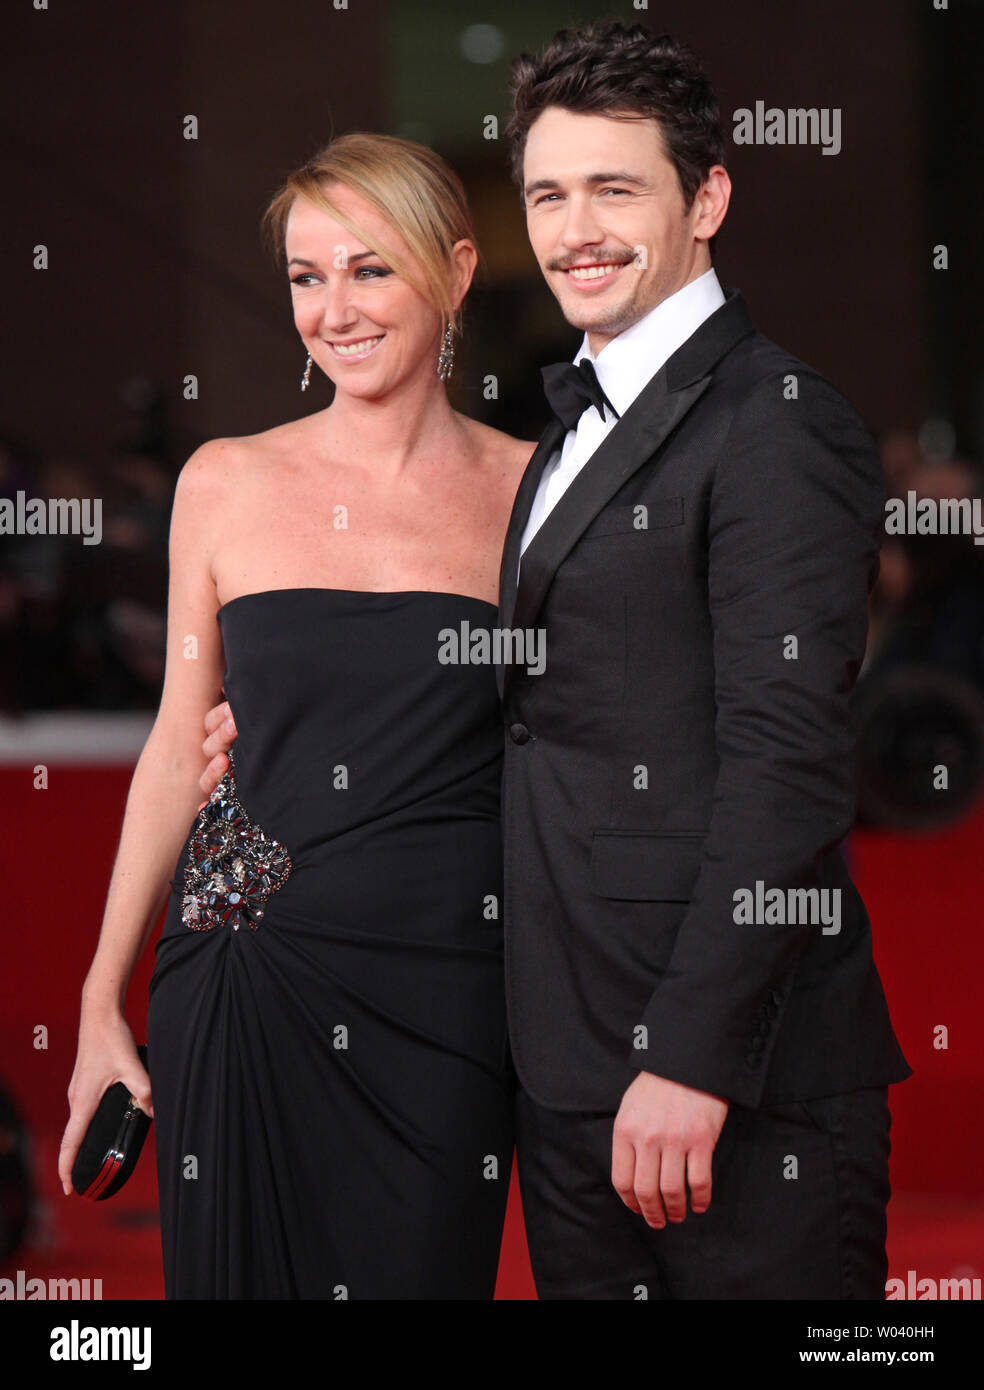 Frida Giannini (L) and James Franco arrive on the red carpet before the screening of a digitally restored version of the 1960 classic film 'La Dolce Vita' during the 5th Rome International Film Festival in Rome on October 30, 2010.   UPI/David Silpa - Stock Image